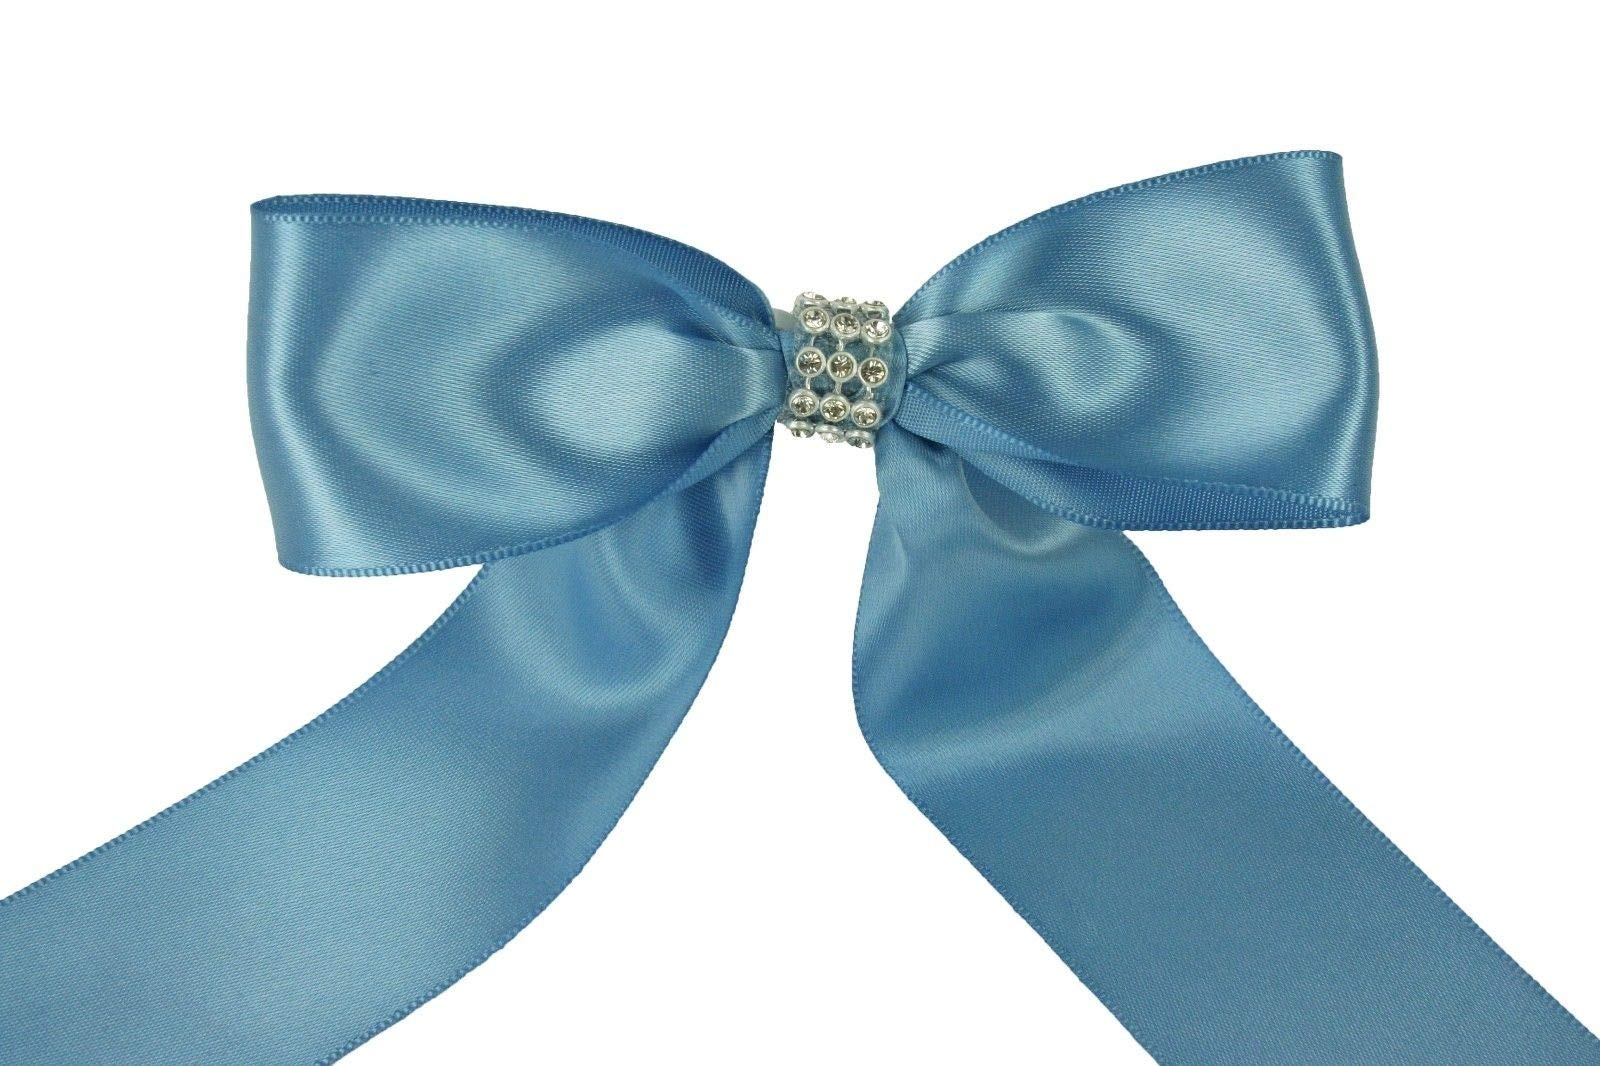 Bright Sun Antique Blue (Set of 10) Pre-Made 1-1/2'' Satin Bows Rhinestone Center Design with Wire Tie #DPNH